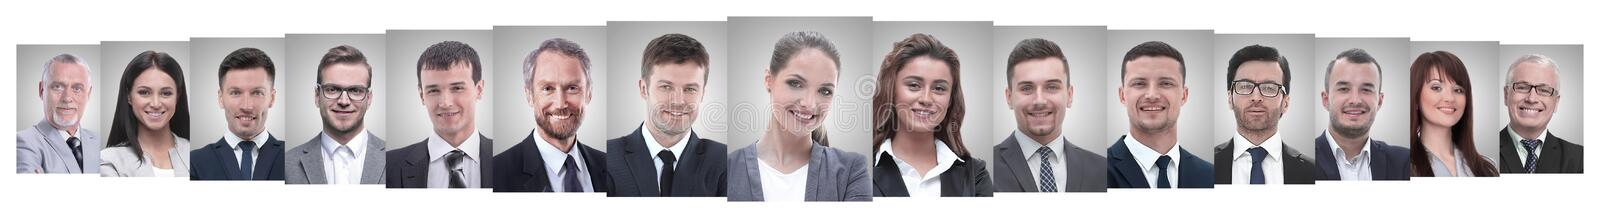 Leader and professional business team standing together. royalty free stock images